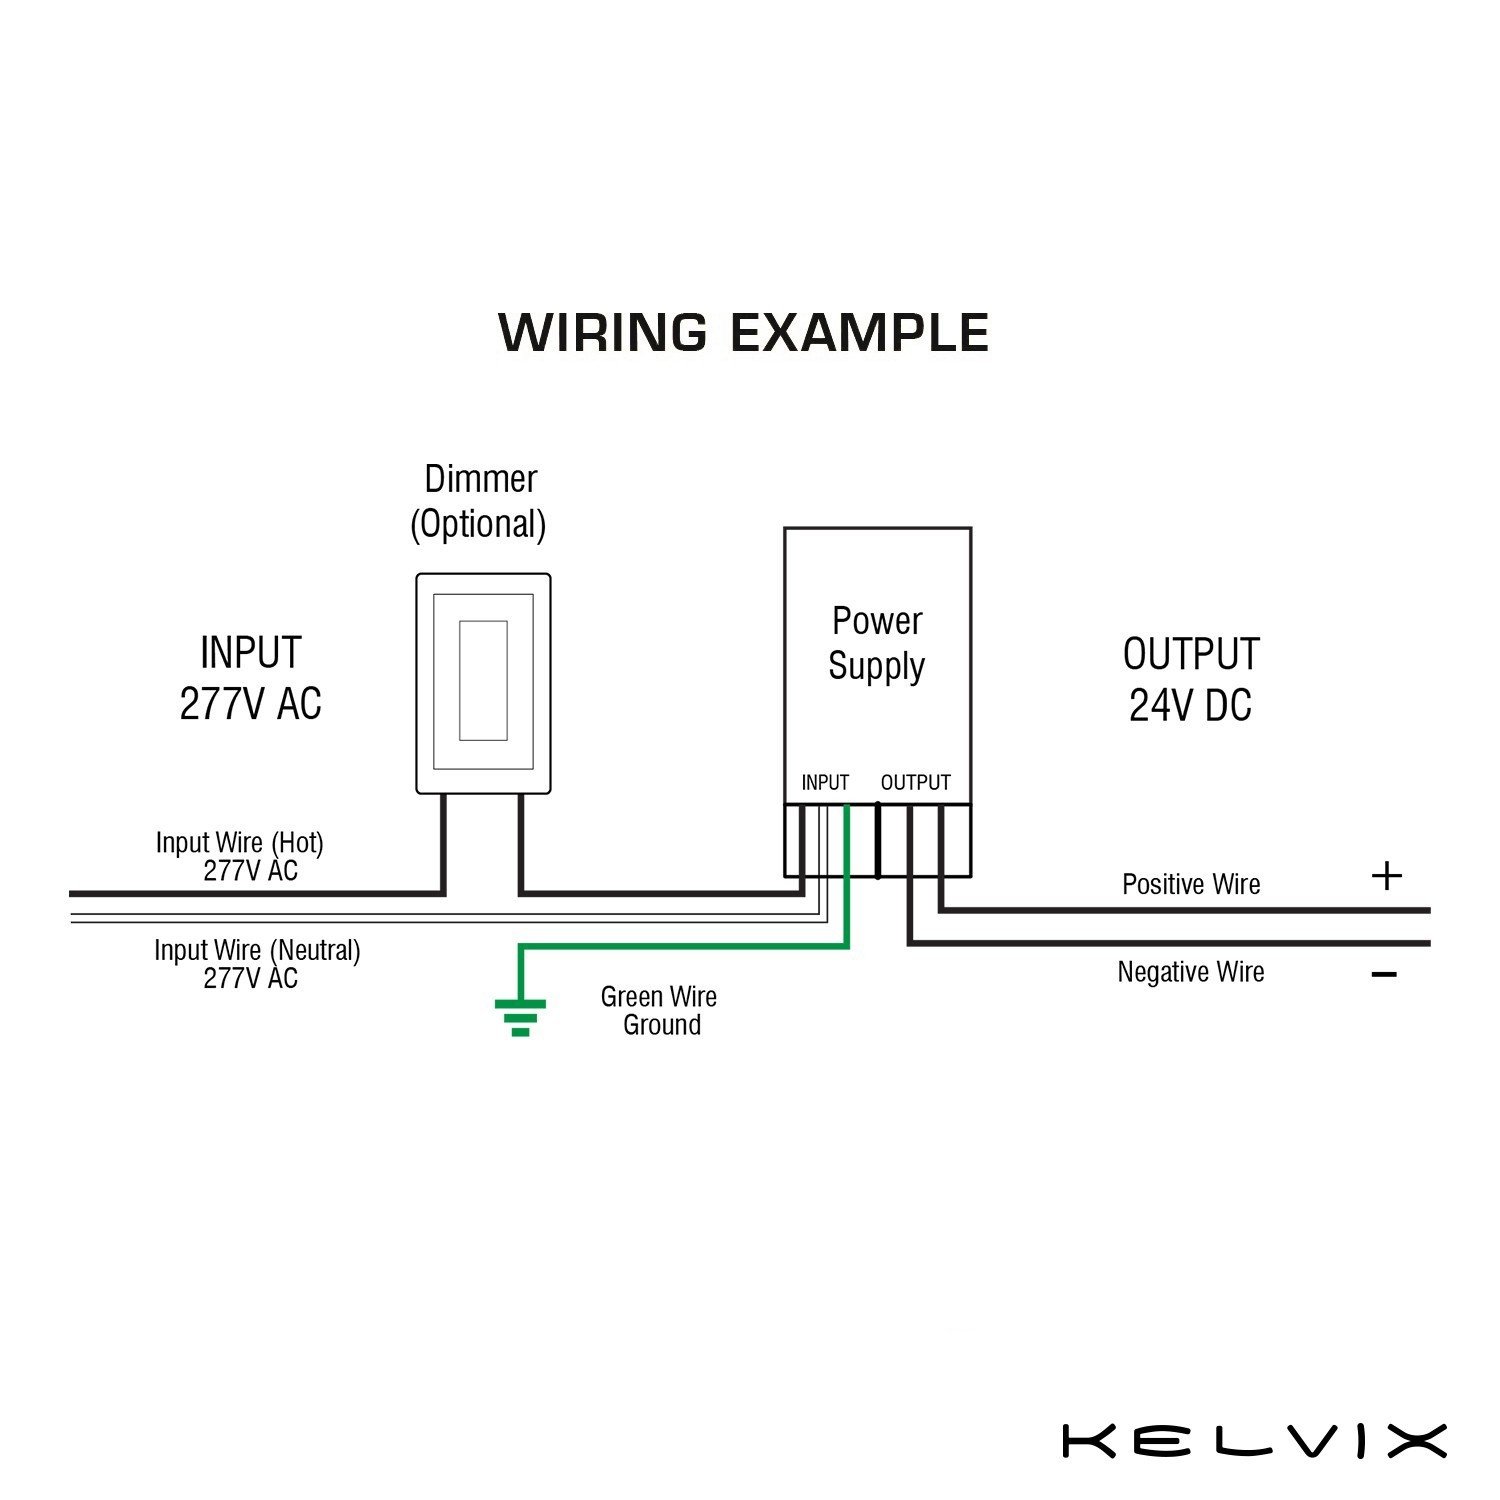 Wiring Diagram 480V Lighting Fixture | Wiring Diagram - 277 Volt Lighting Wiring Diagram